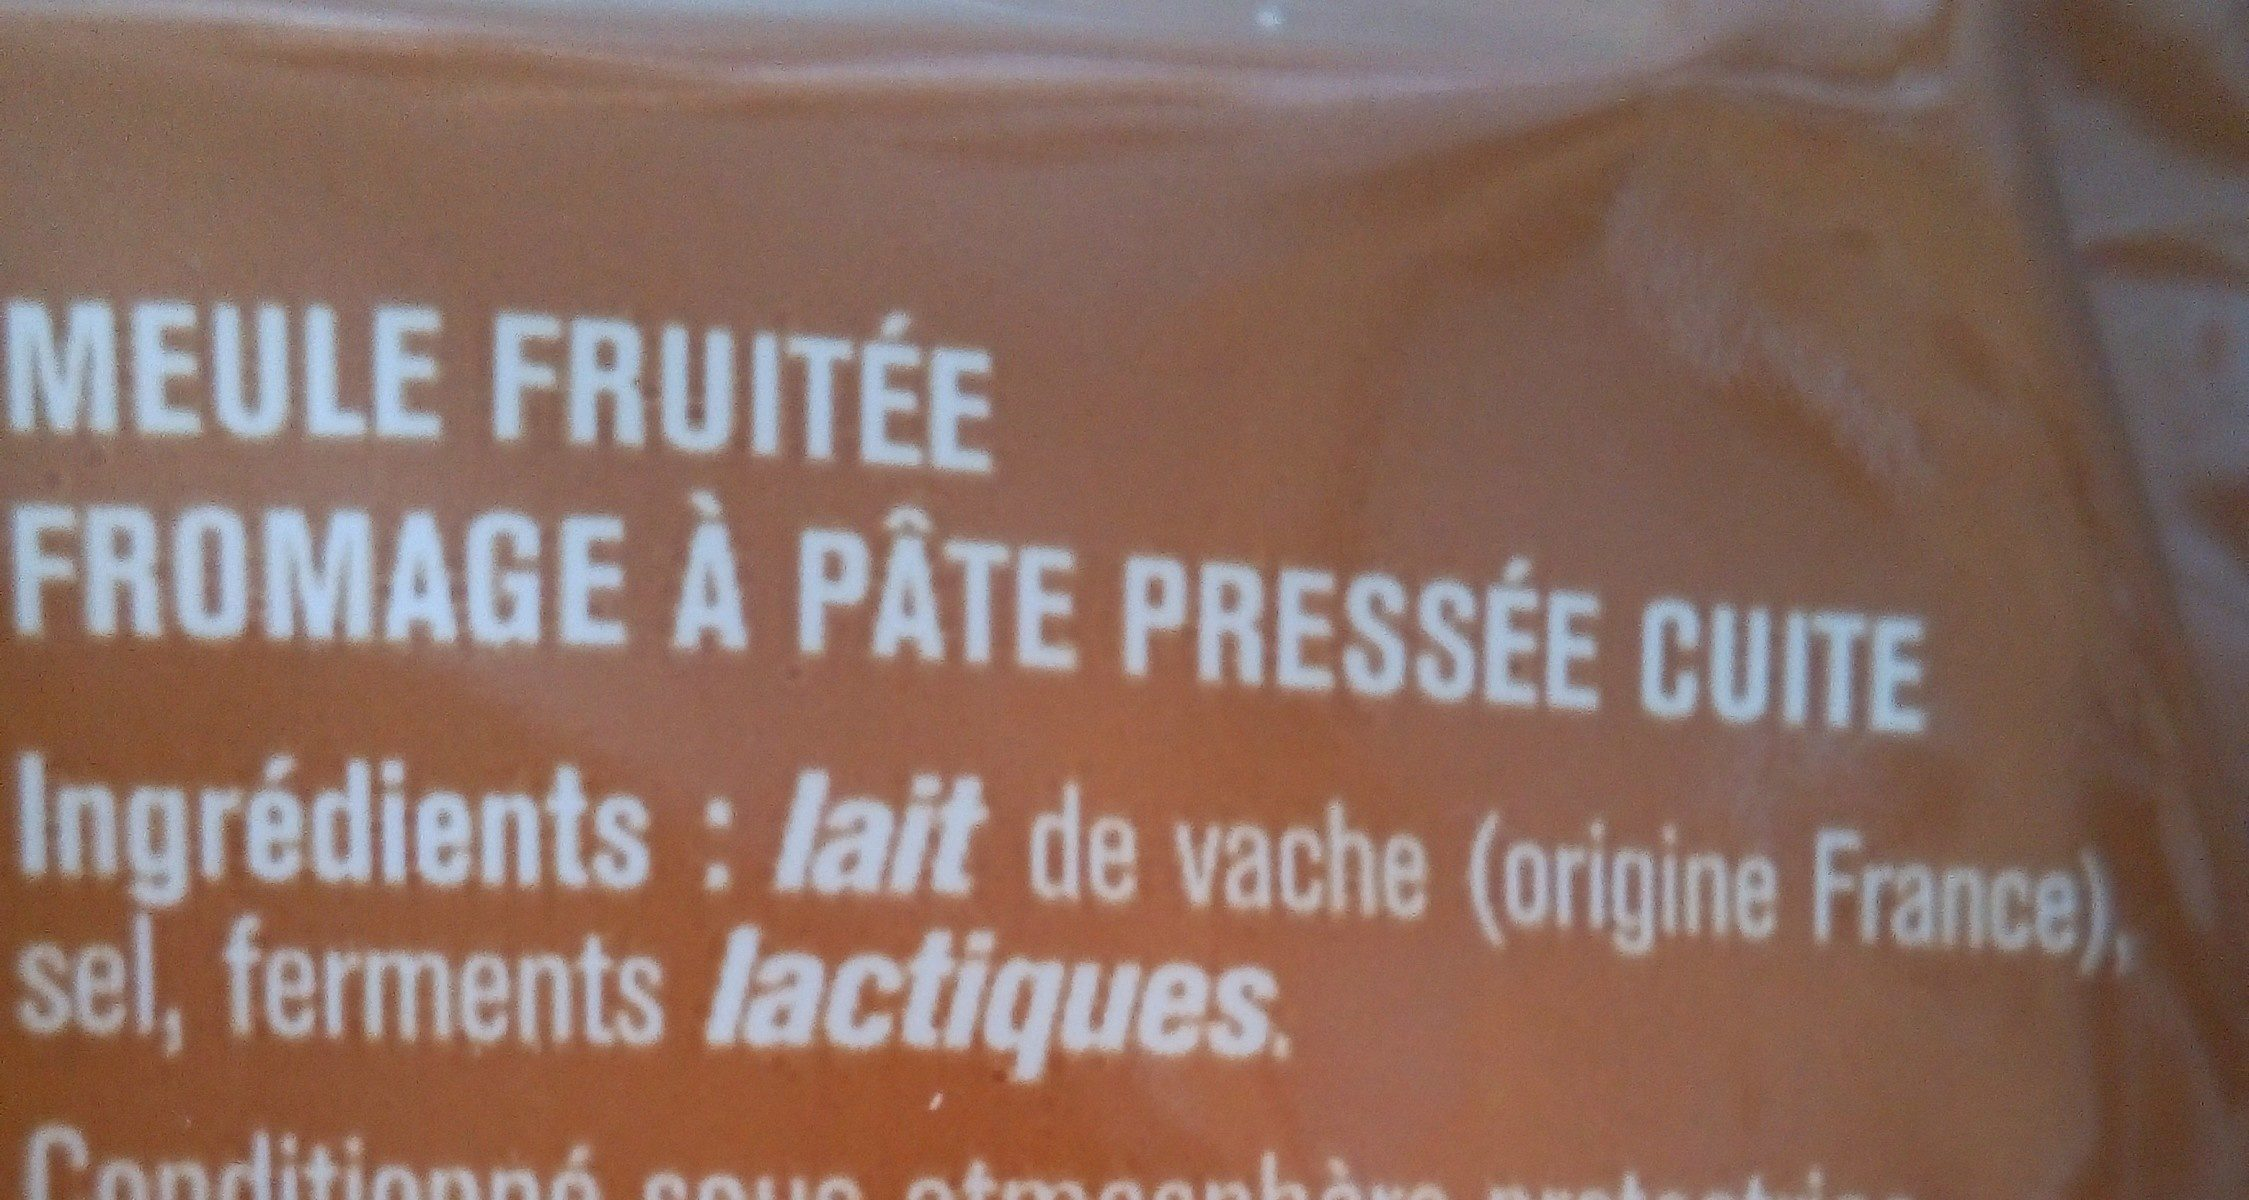 Meule fruitée - Ingredientes - fr